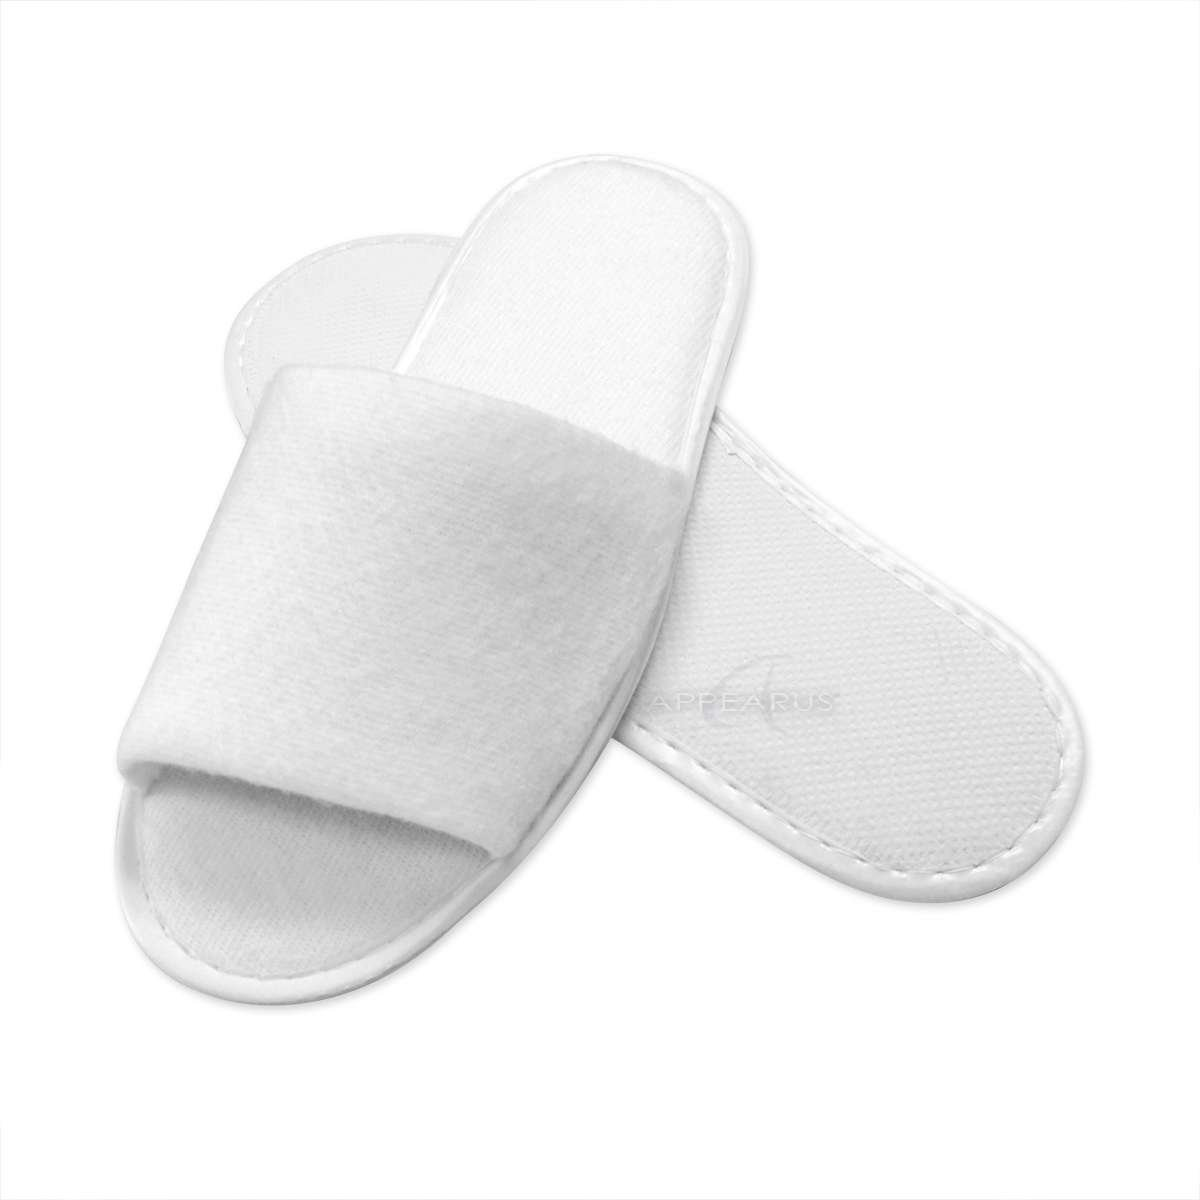 Appearus Disposable Spa slippers, Open toe (50 Pairs) by Appearus (Image #1)